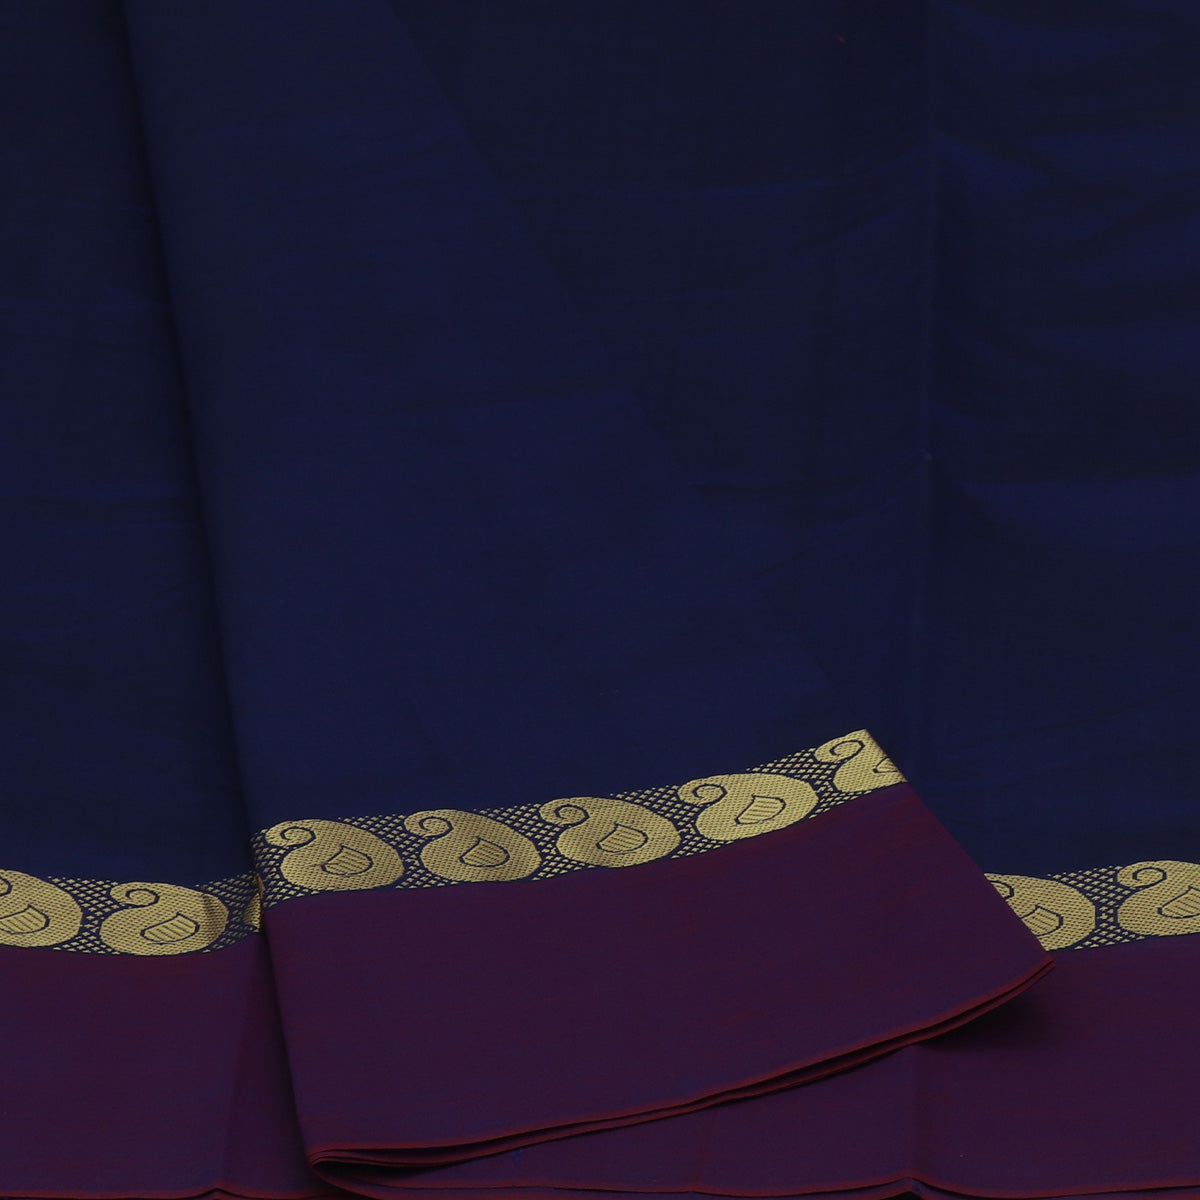 Blended Cotton Saree Navy Blue and Dark Pink shade with Mango zari border 9 Yard